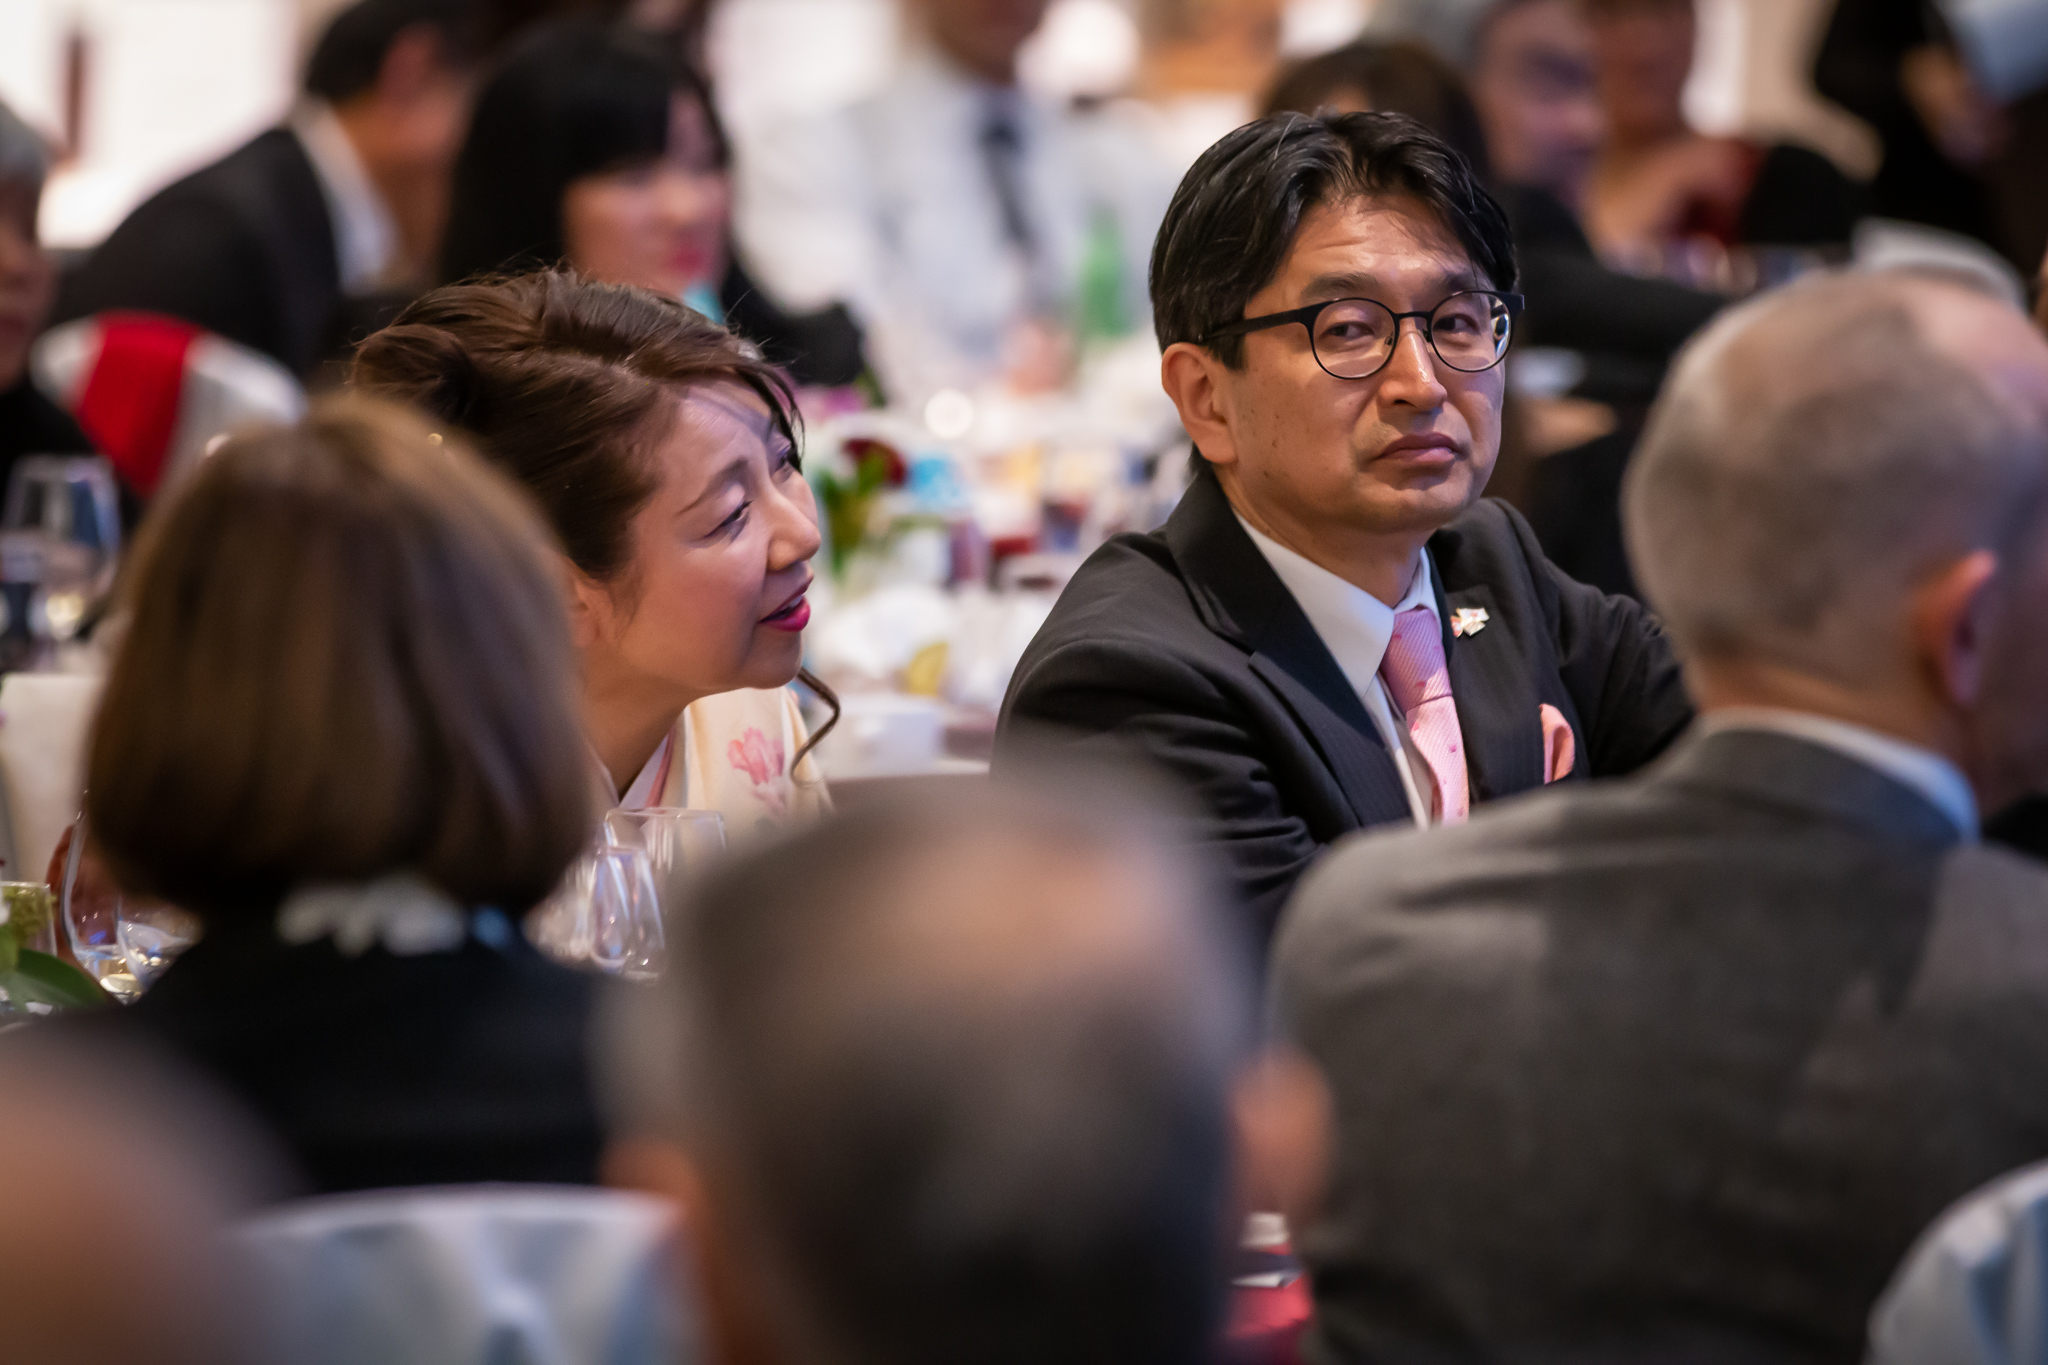 190310 Sakura Gala 2019 19-42-31 - Photo by Adam PW Smith.jpg